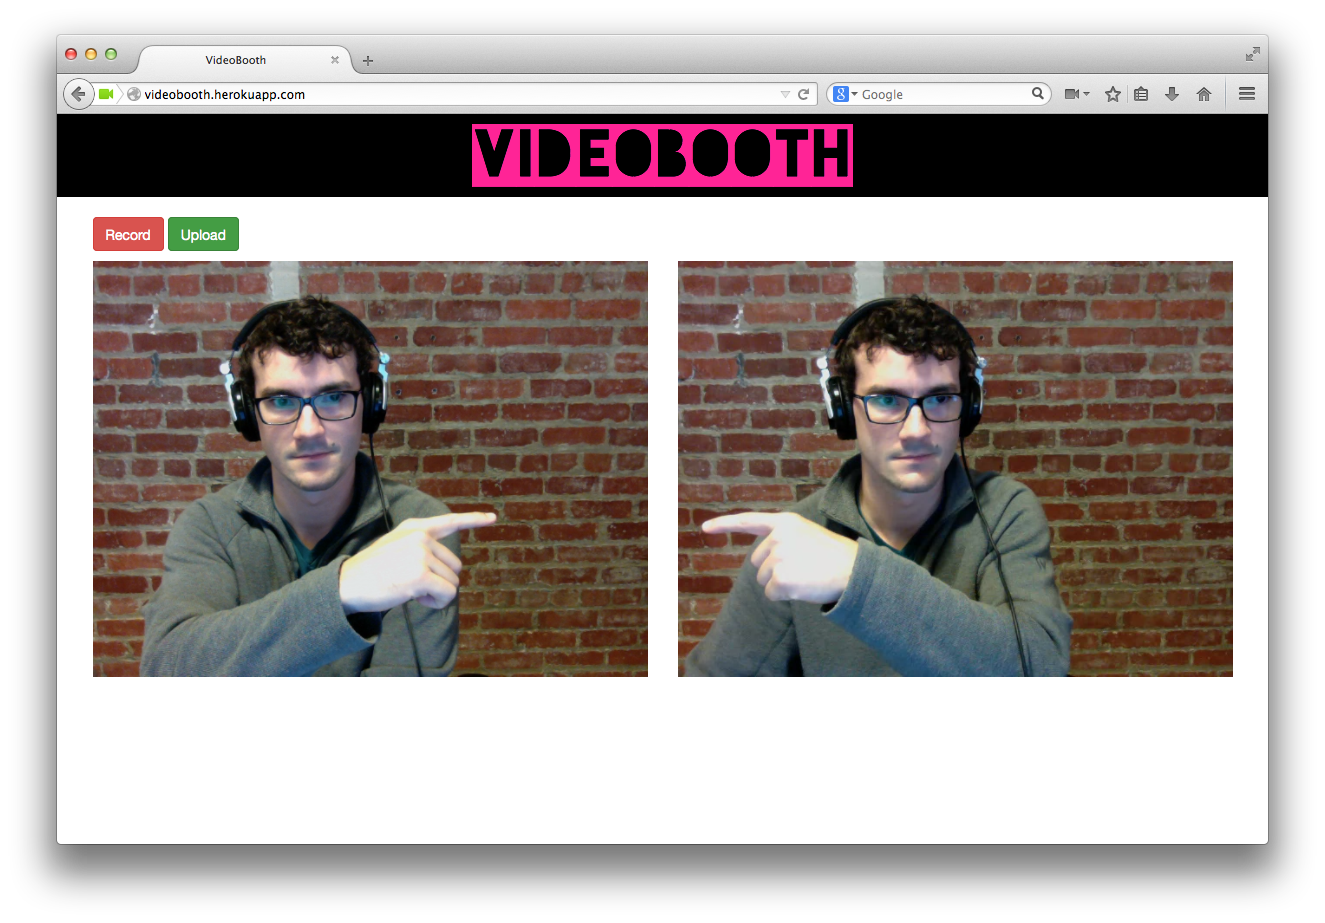 videobooth screenshot